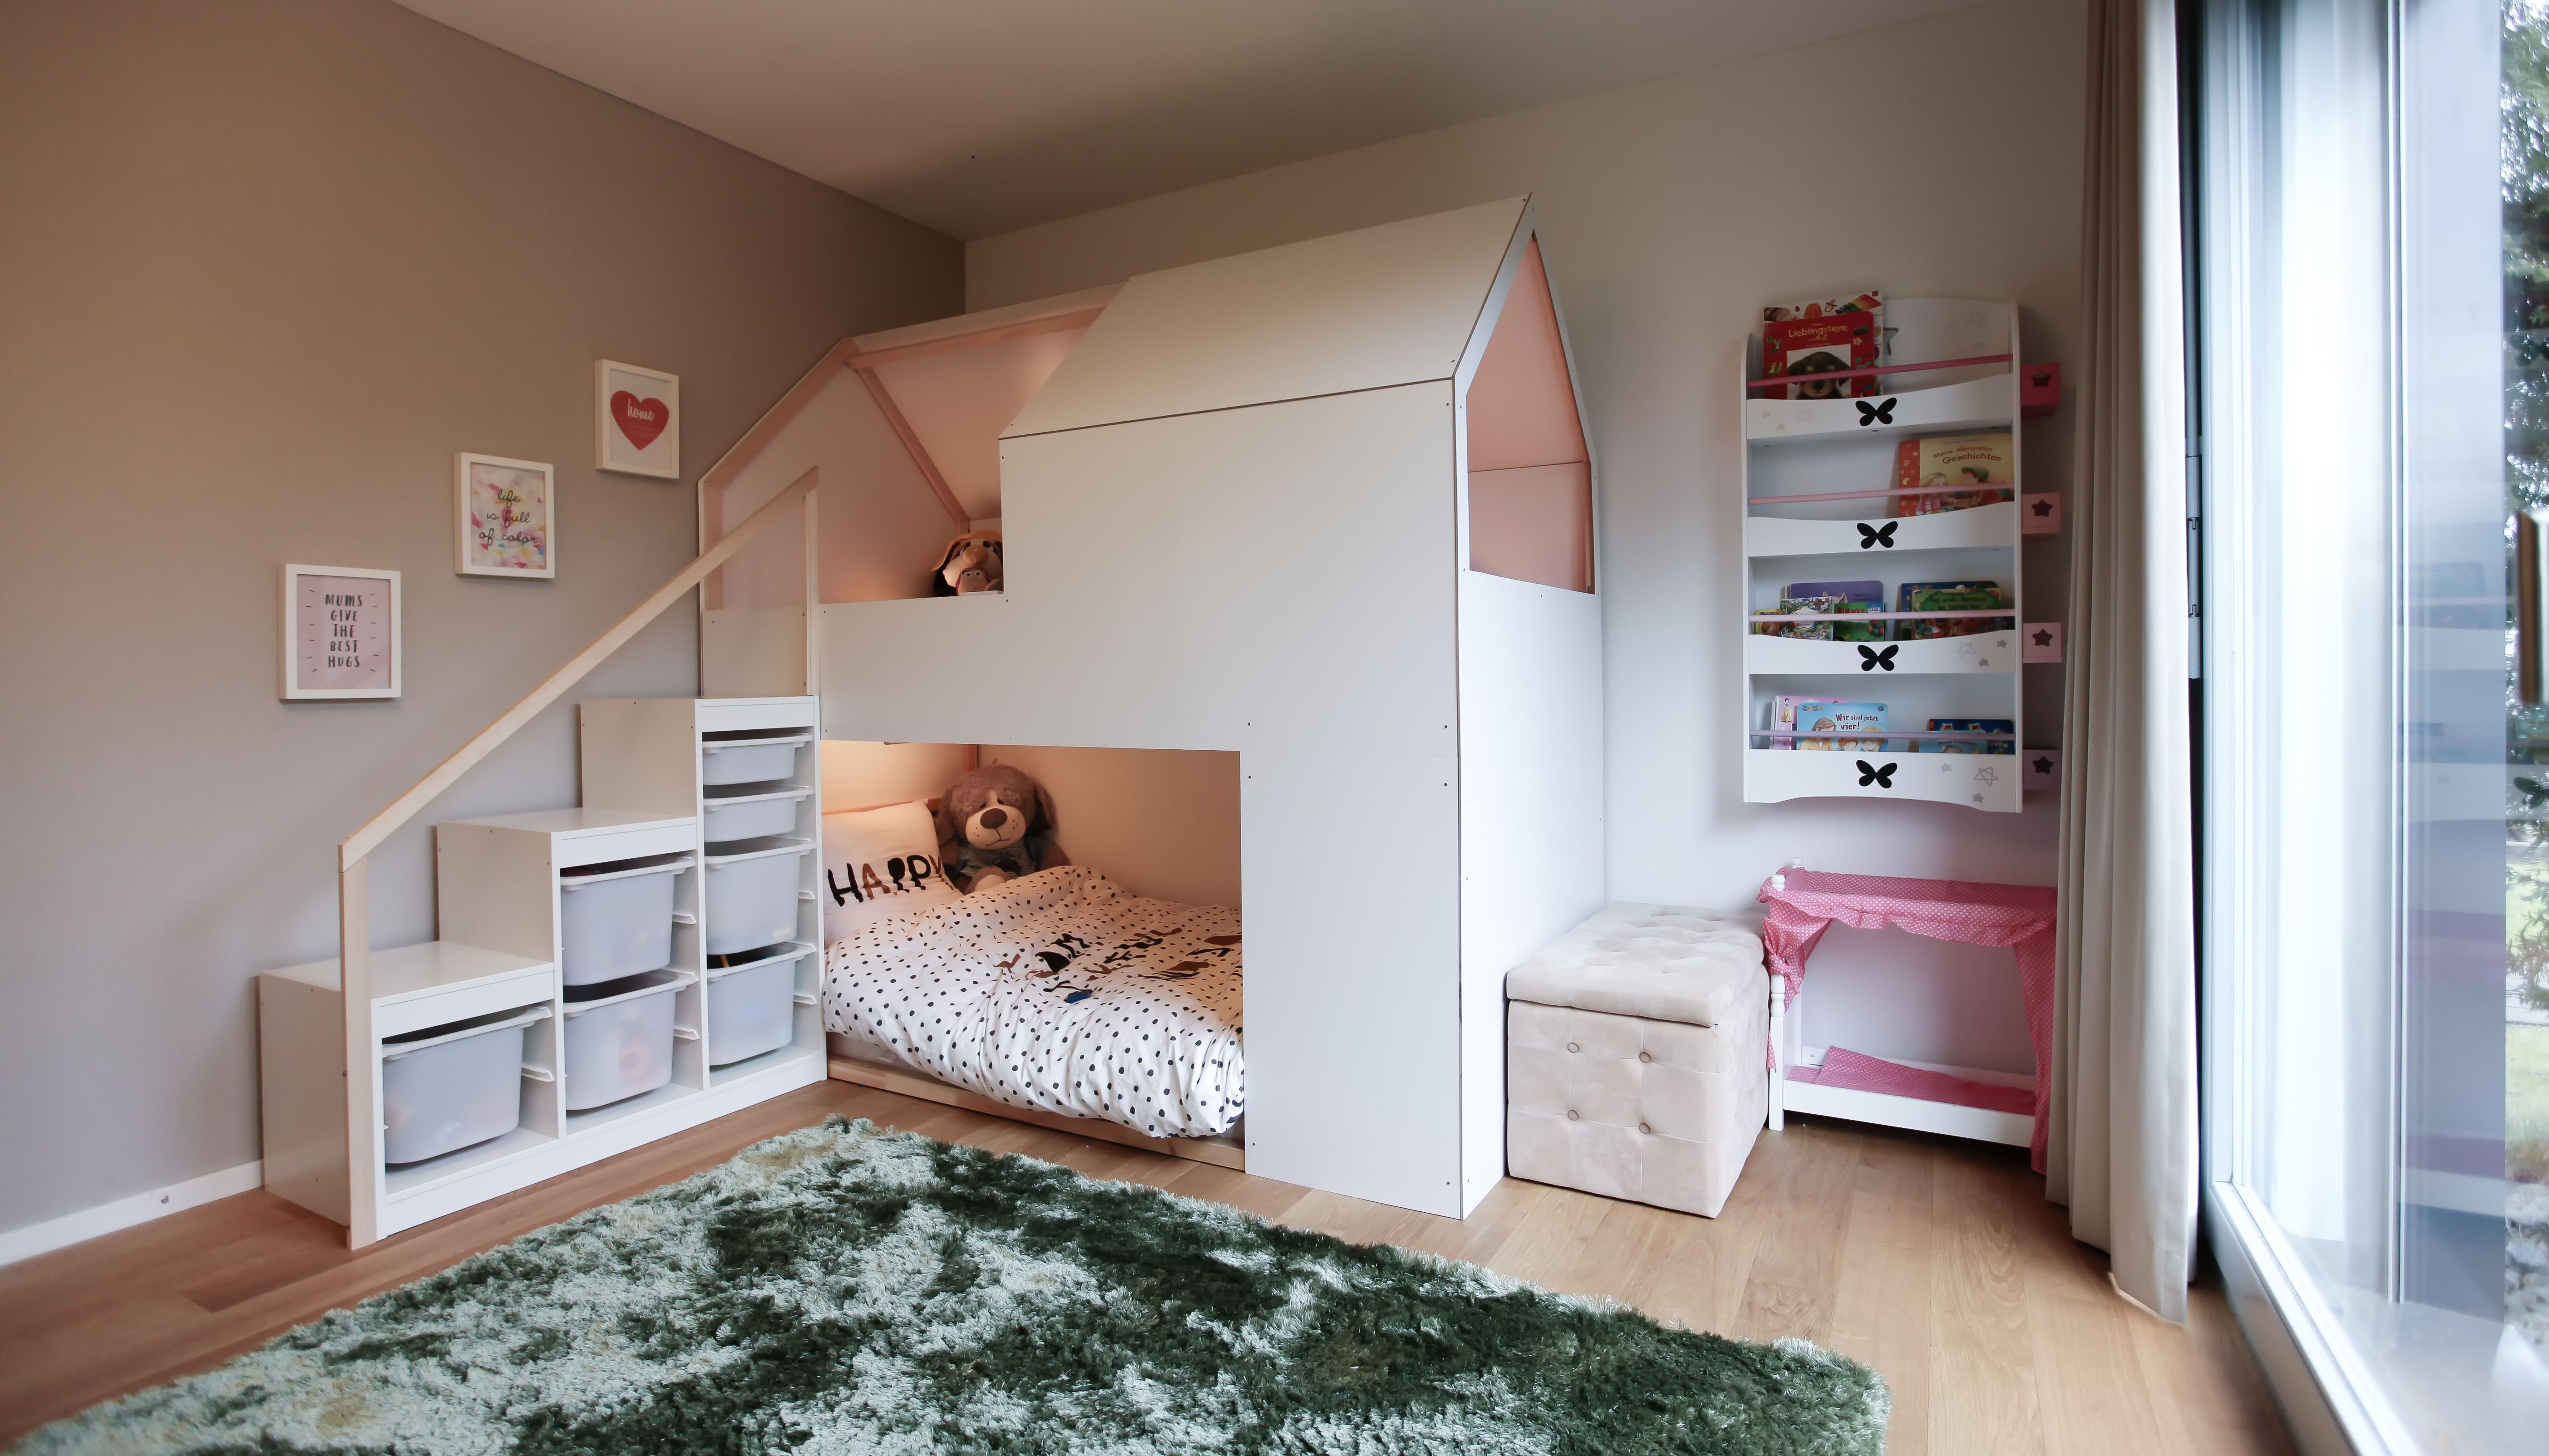 kura hack kura hack pinterest kura hack kids rooms and room. Black Bedroom Furniture Sets. Home Design Ideas